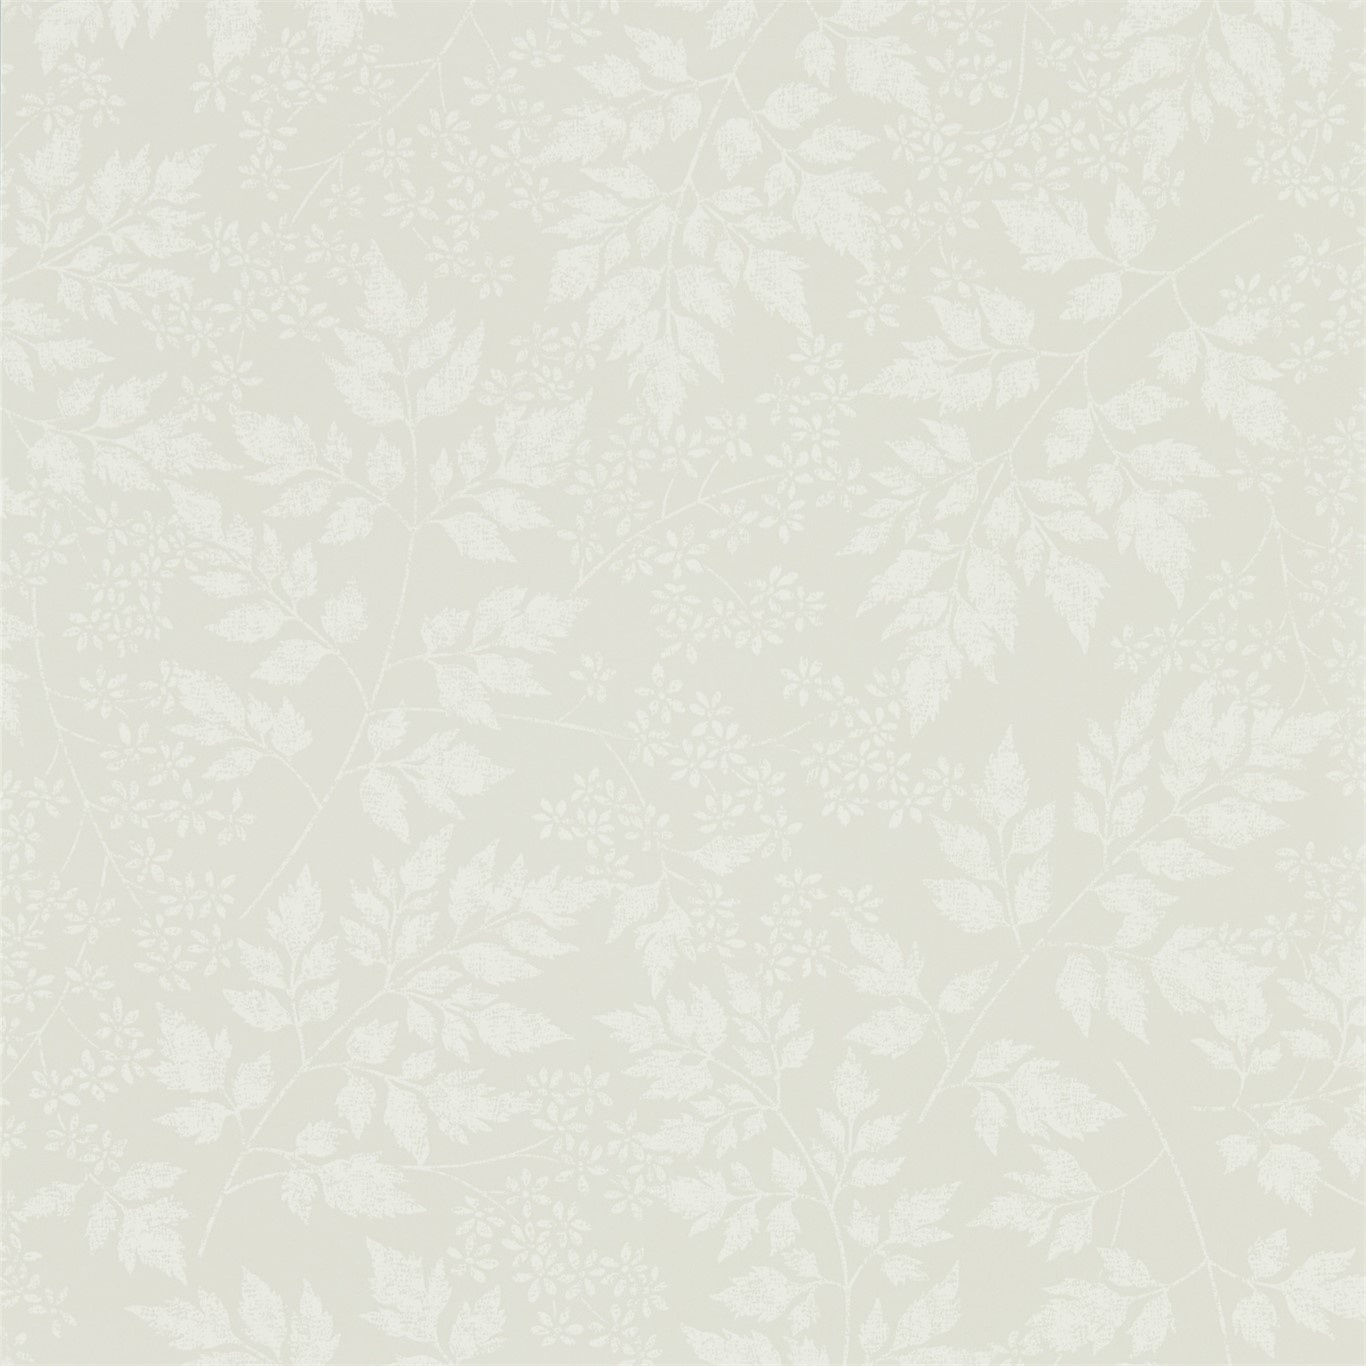 Image of Sanderson Home Spring Leaves Flint Wallpaper 216371